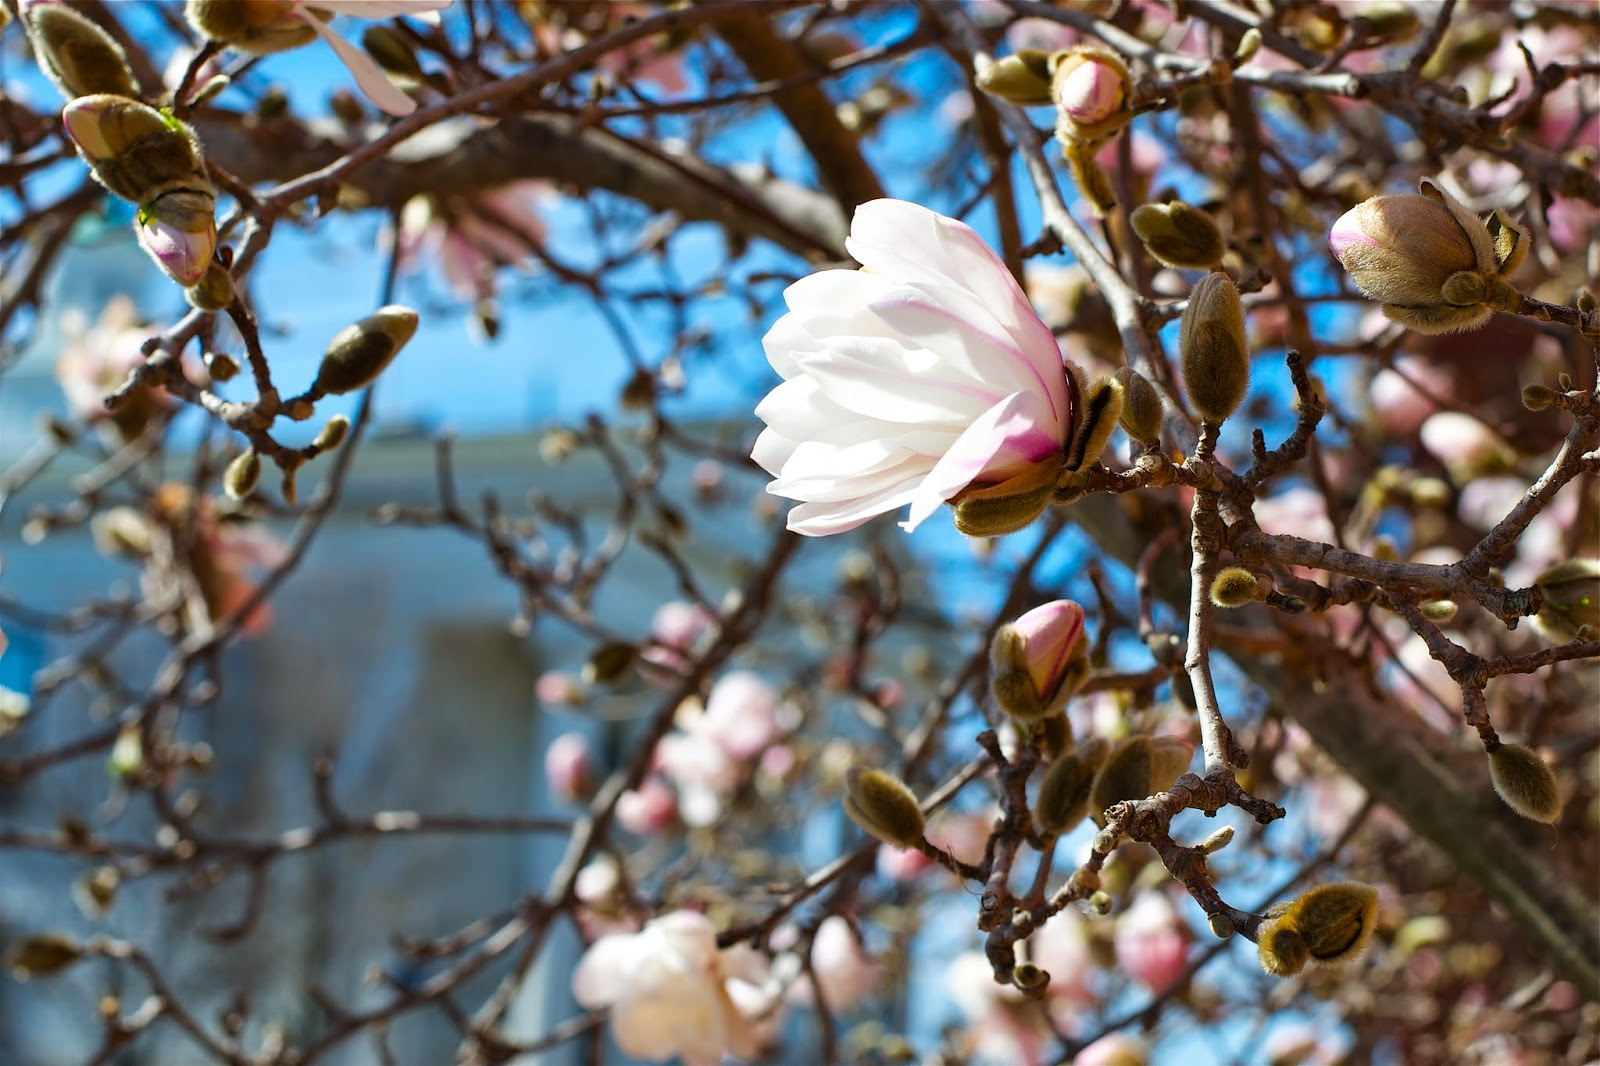 Magnolia flower, so beautiful!